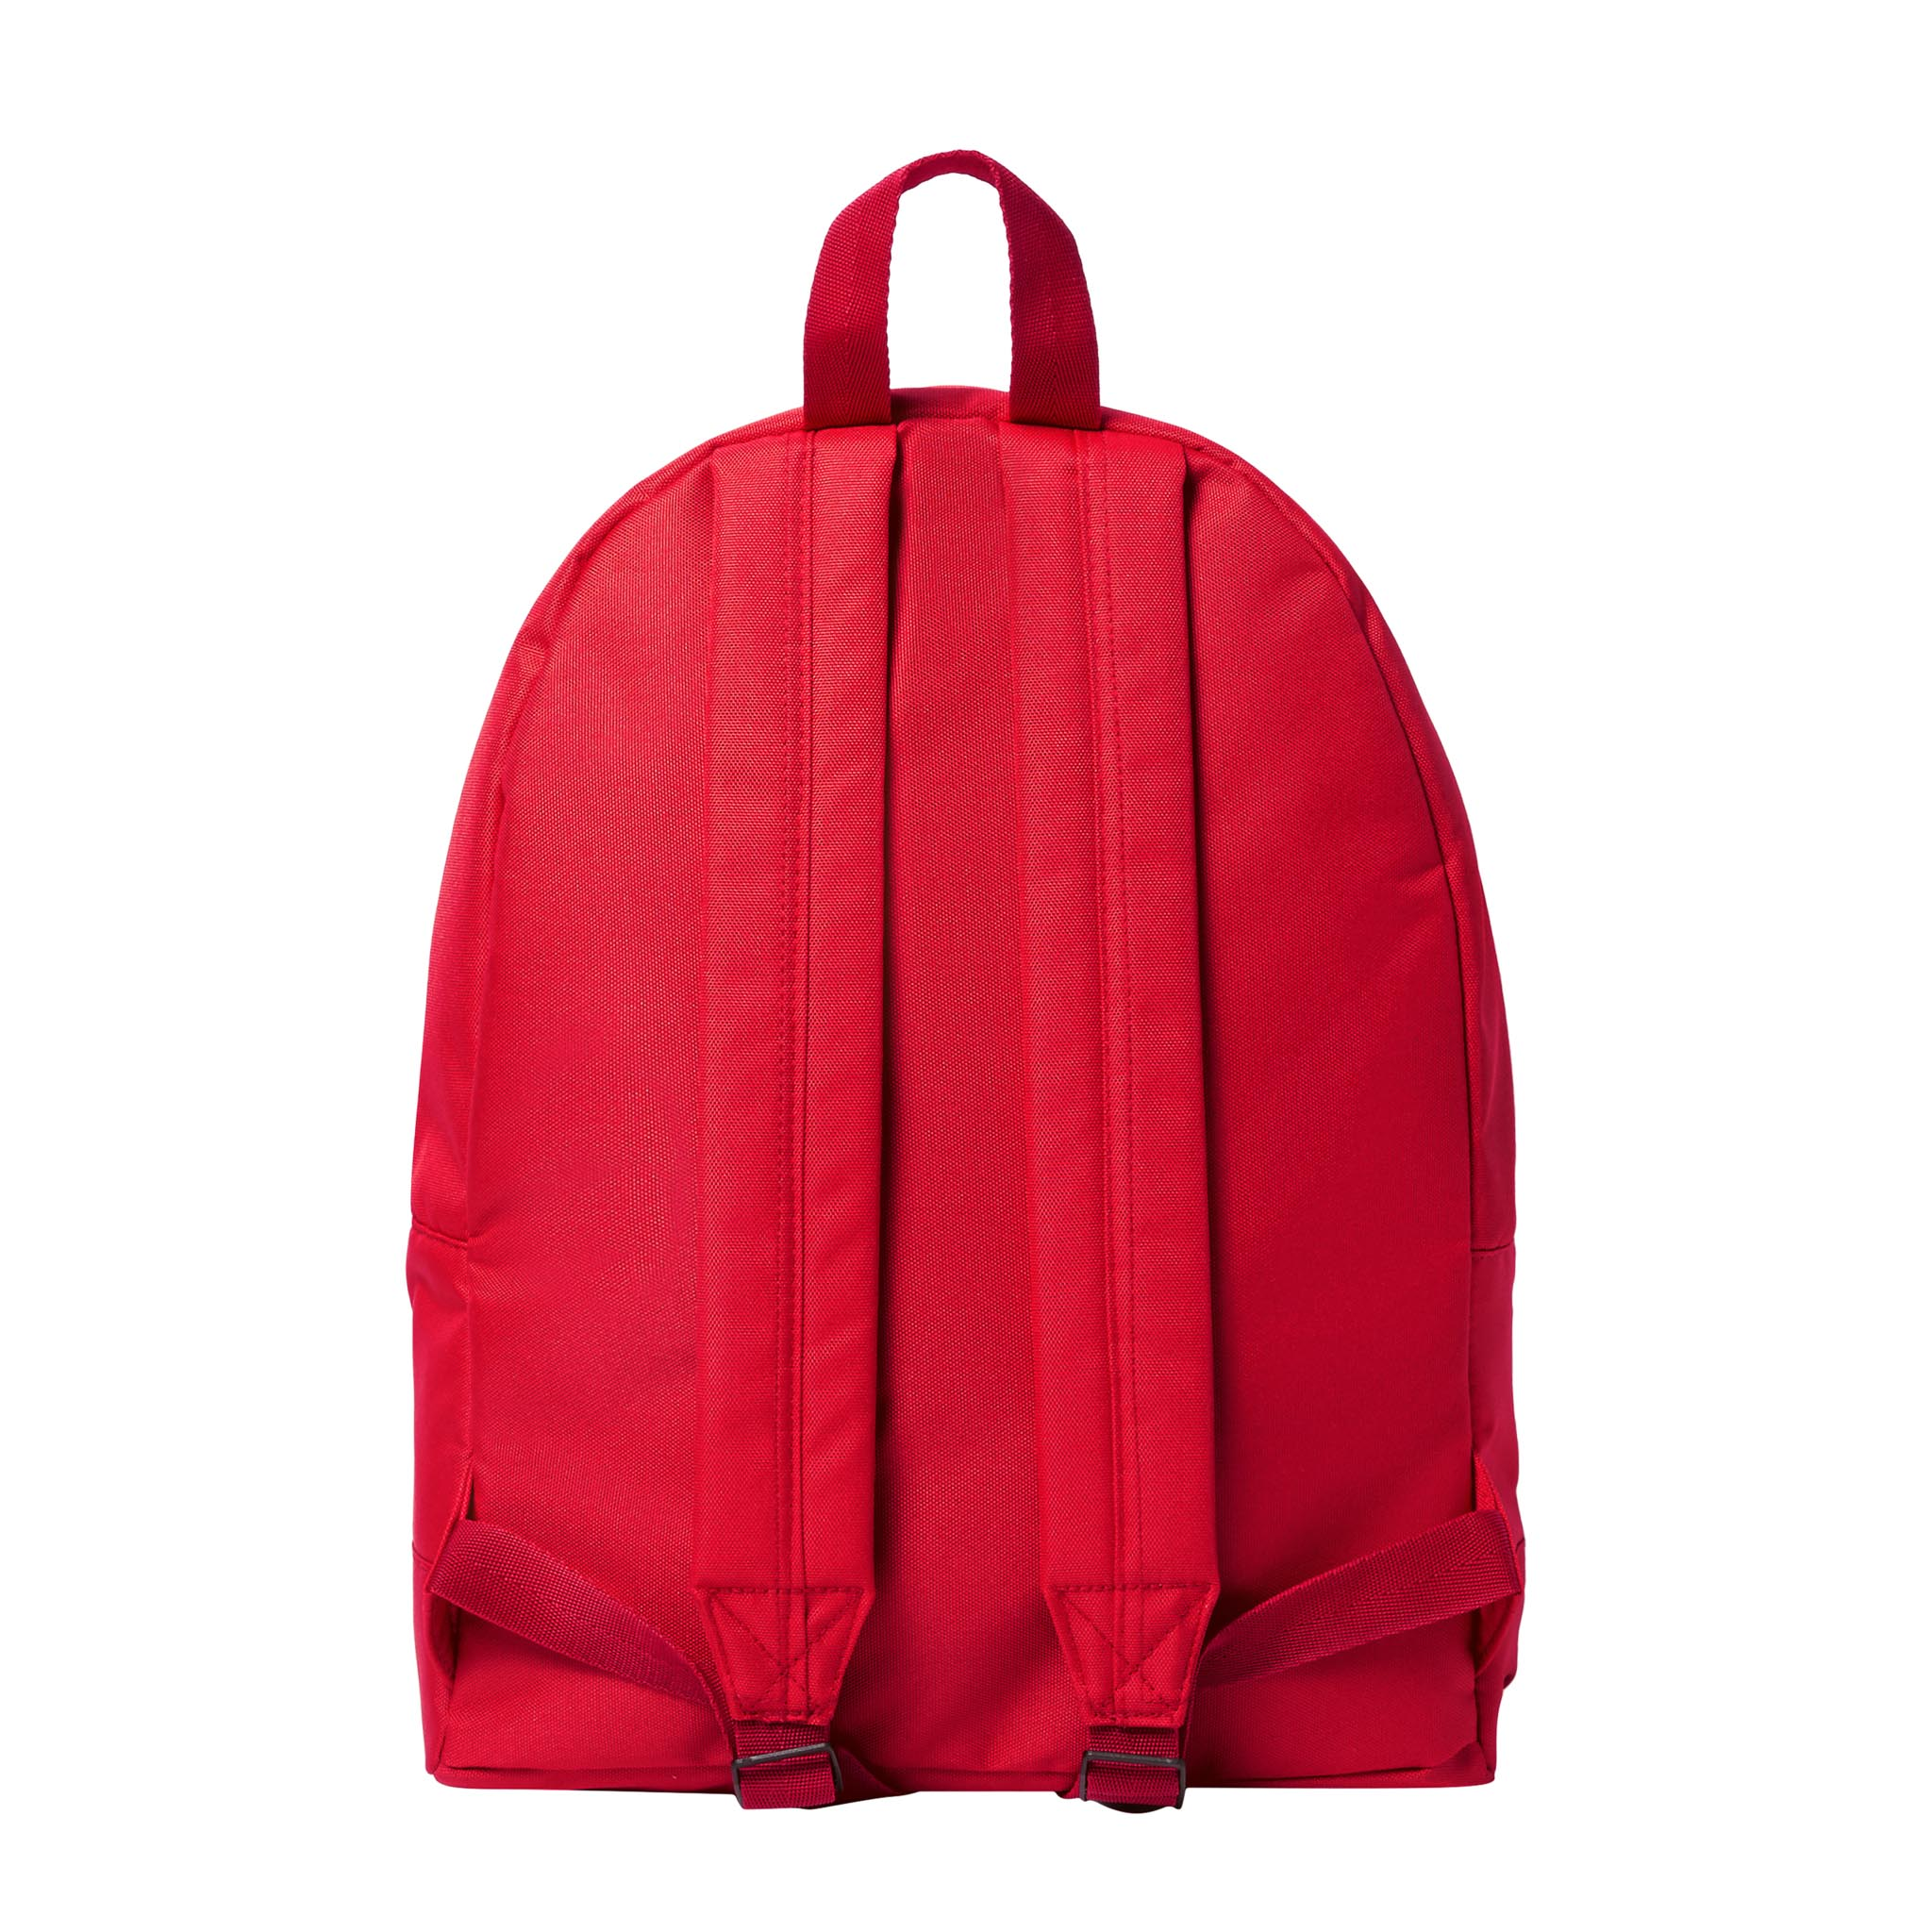 Academy crest Backpack - ACADEMY RED